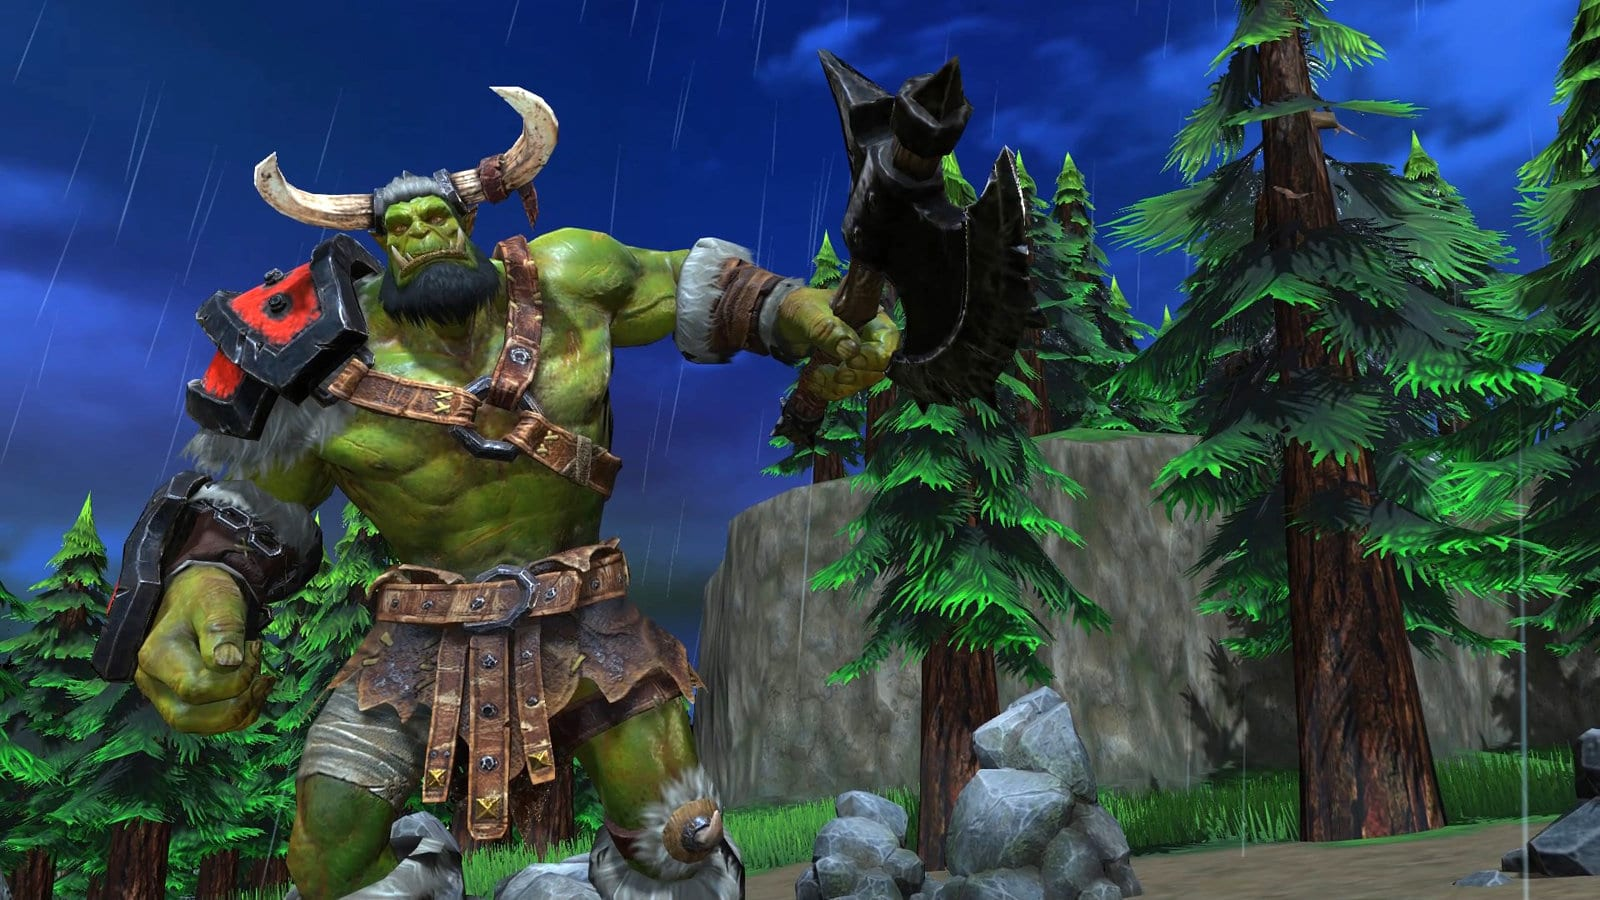 Warcraft 3: Reforged Beta Release Date - When Is It Coming